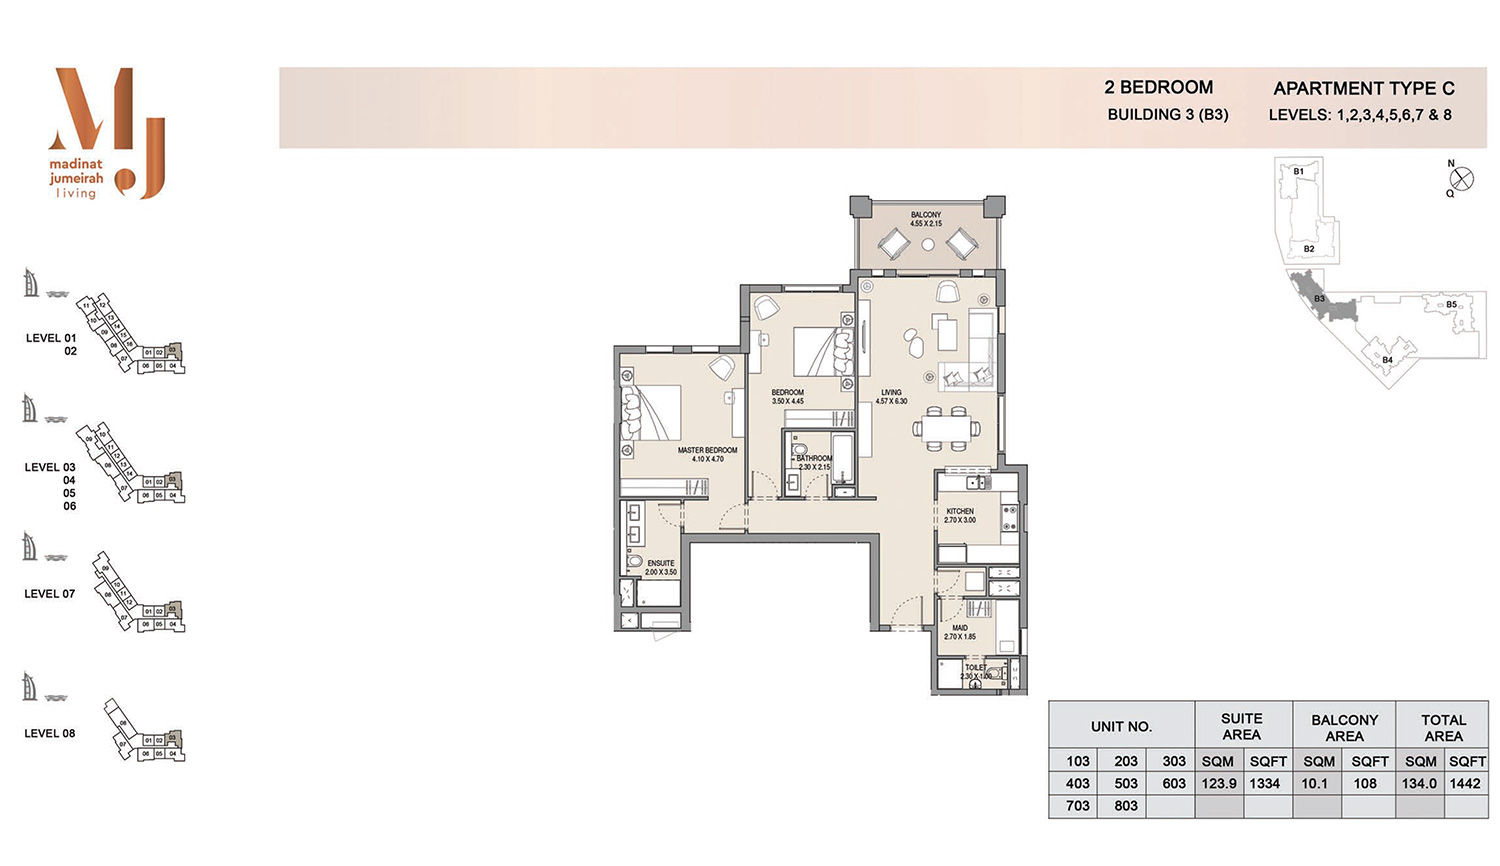 Building3 2 Bedroom, Type C, Levels 1 to 8, Size 1442 sq.ft